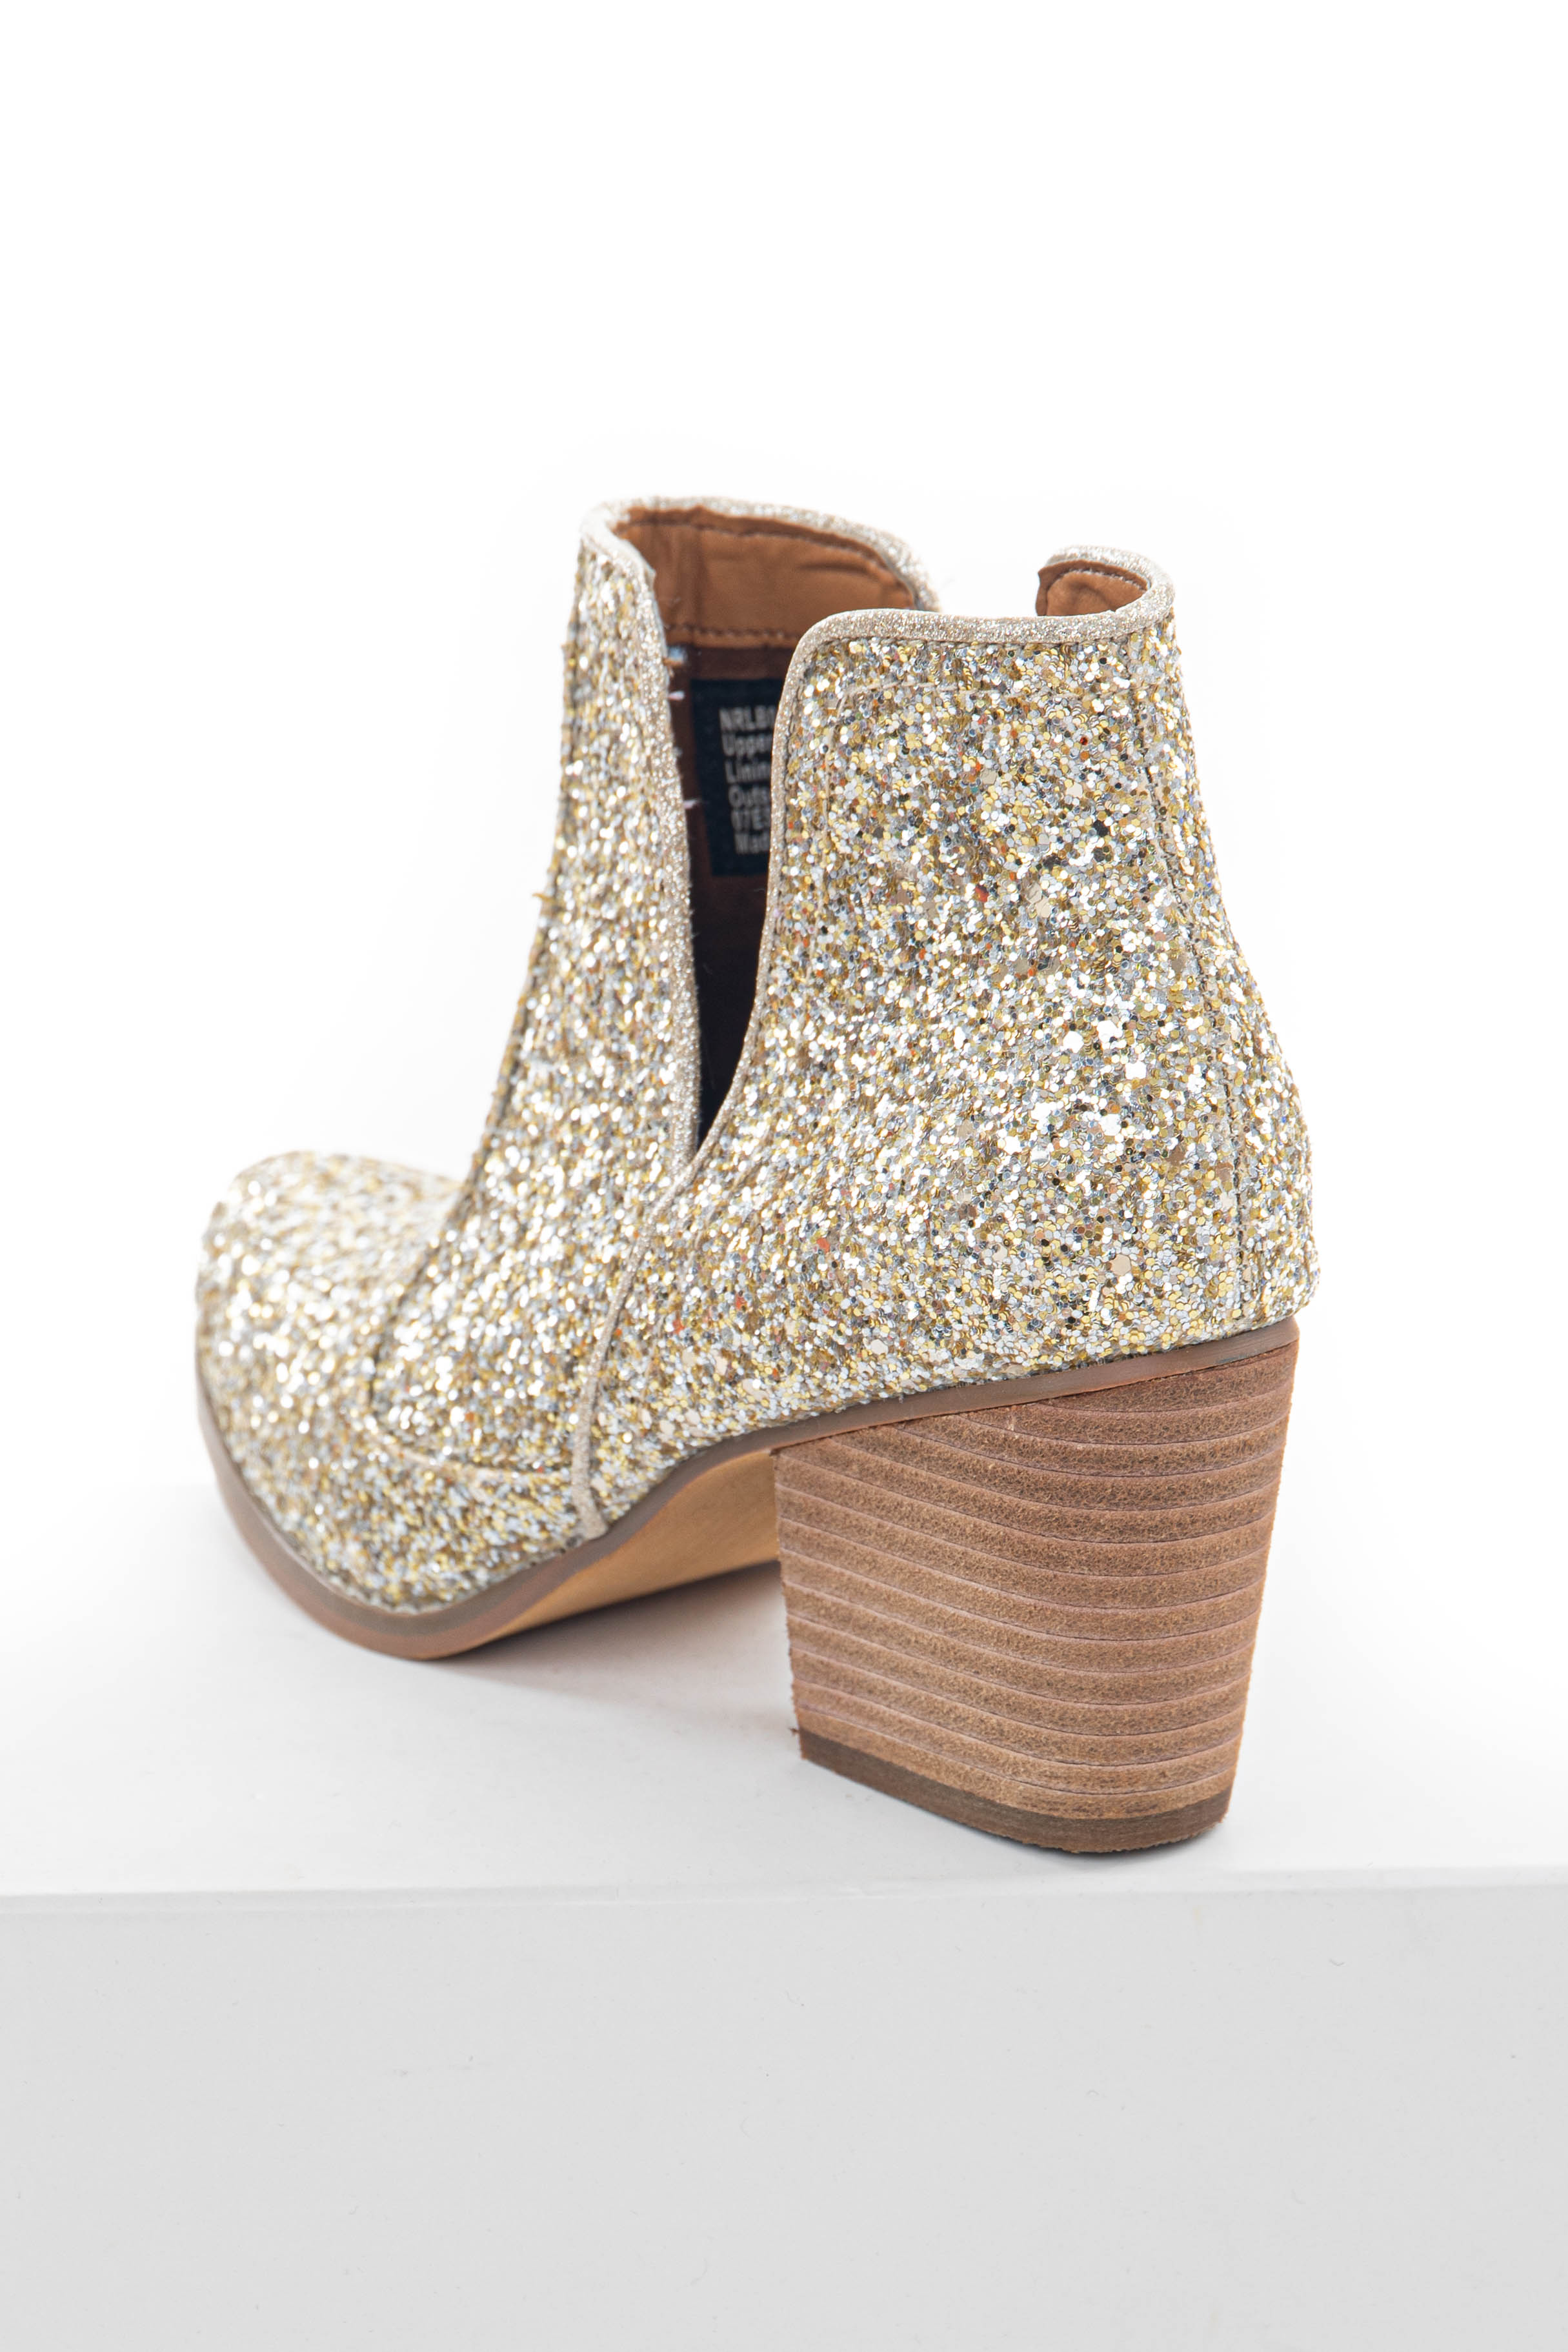 Gold and Silver Glitter Stacked Heel Booties